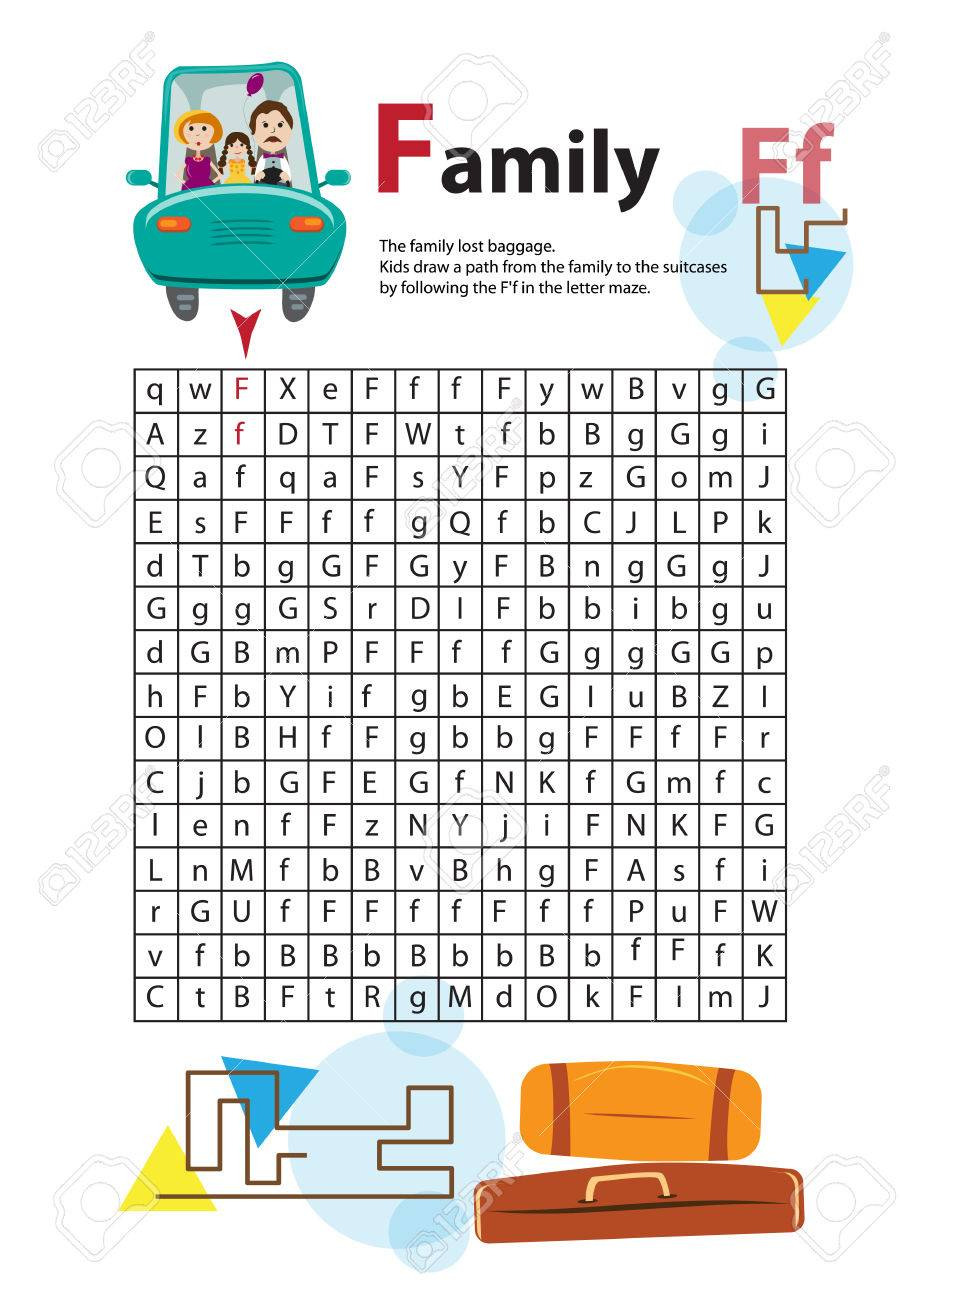 6 Letter Words Starting With G Gallery Examples Ideas E